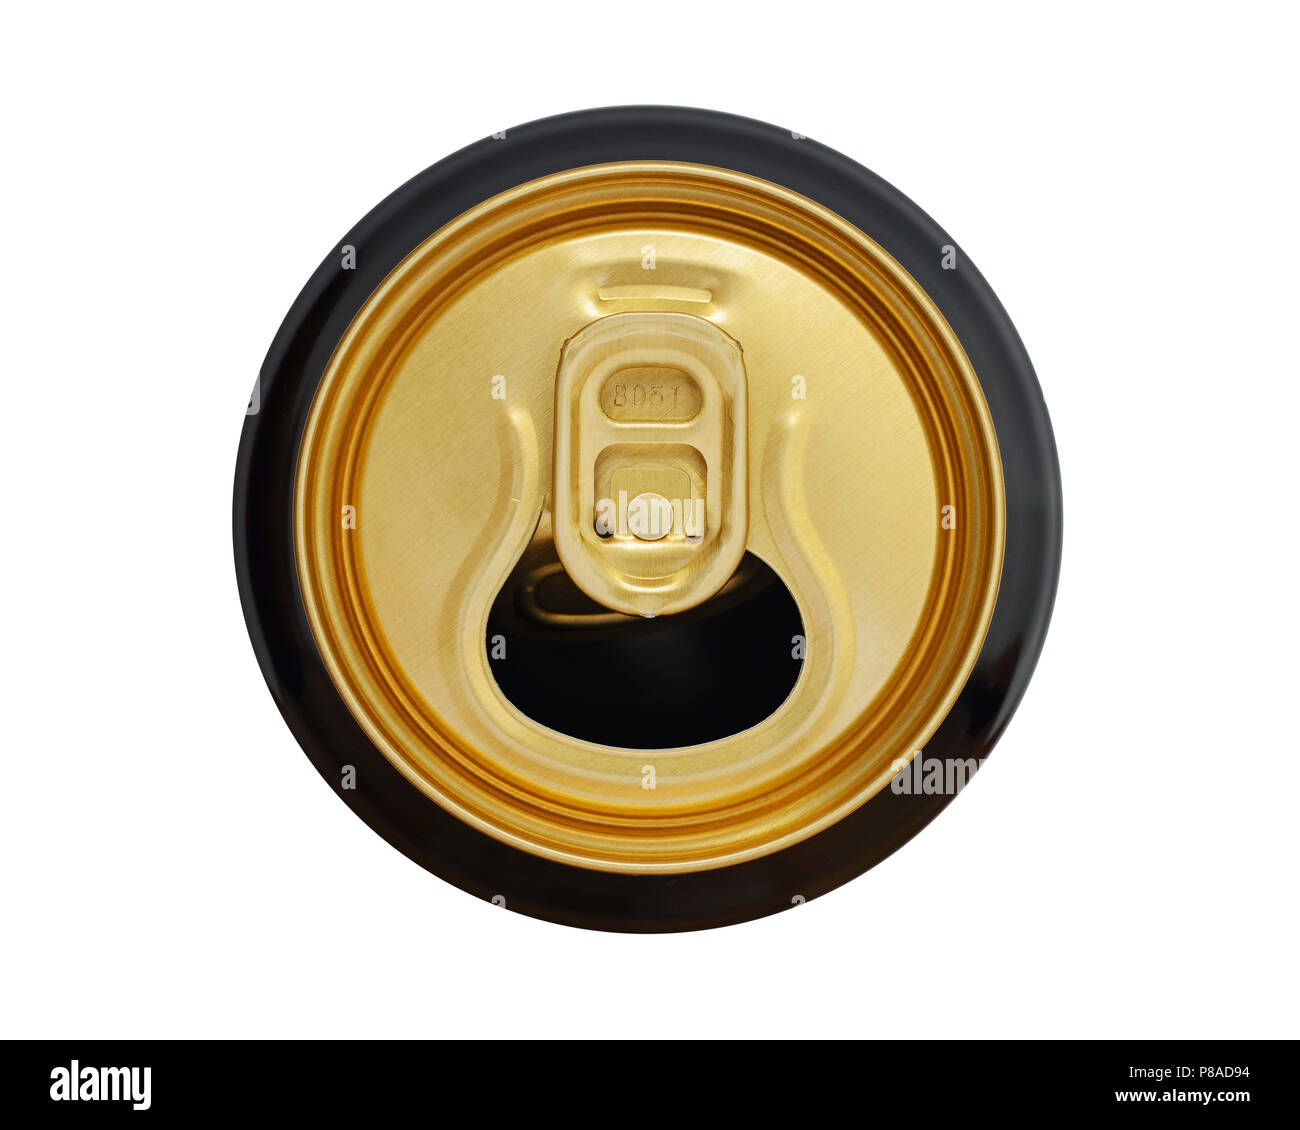 Drinks Can Top with Ring Pull, Cut Out - Stock Image